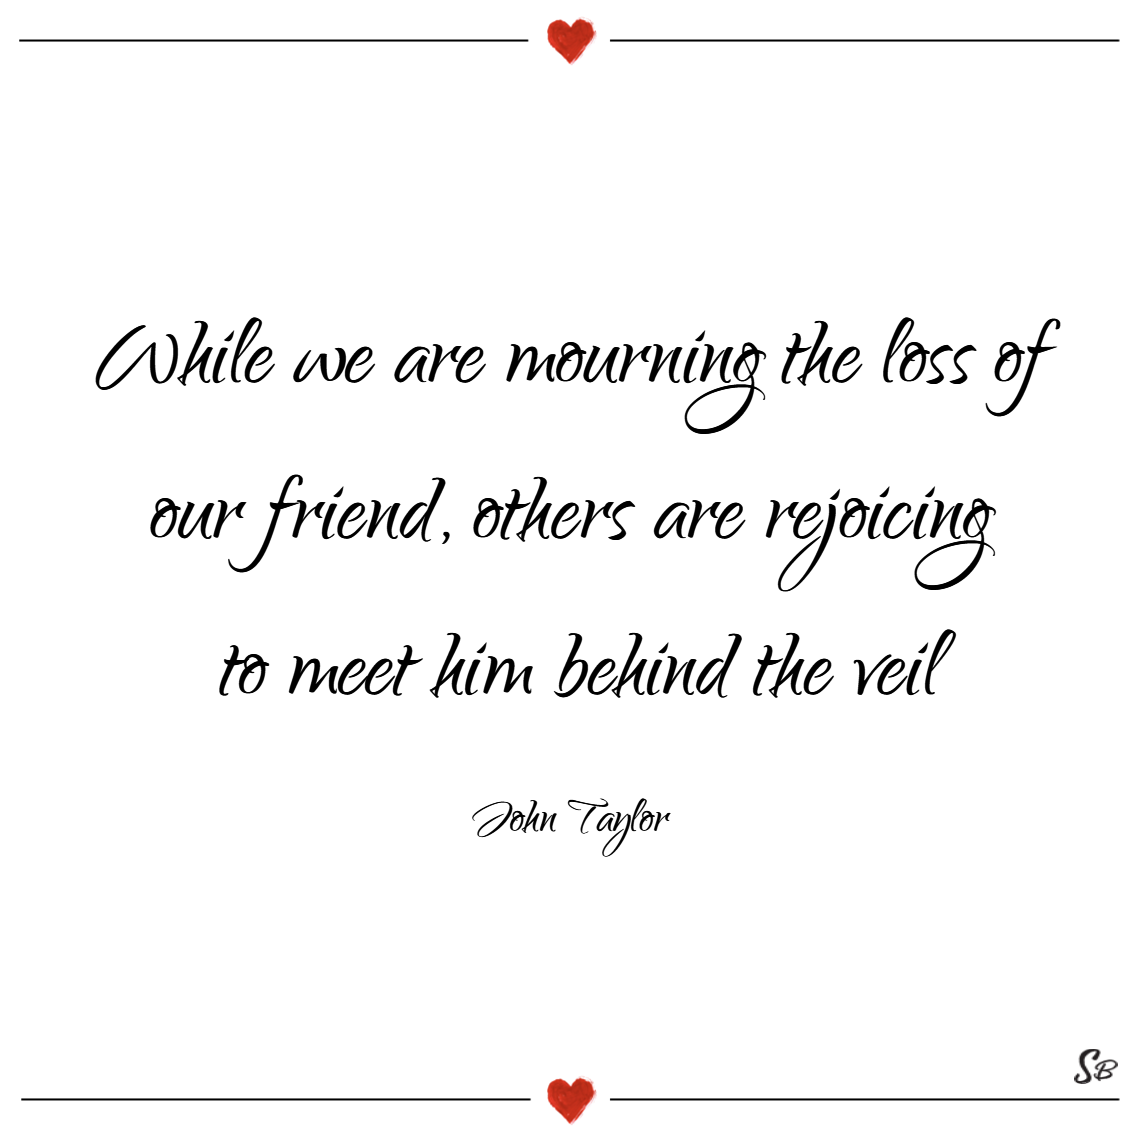 While we are mourning the loss of our friend, others are rejoicing to meet him behind the veil. – john taylor